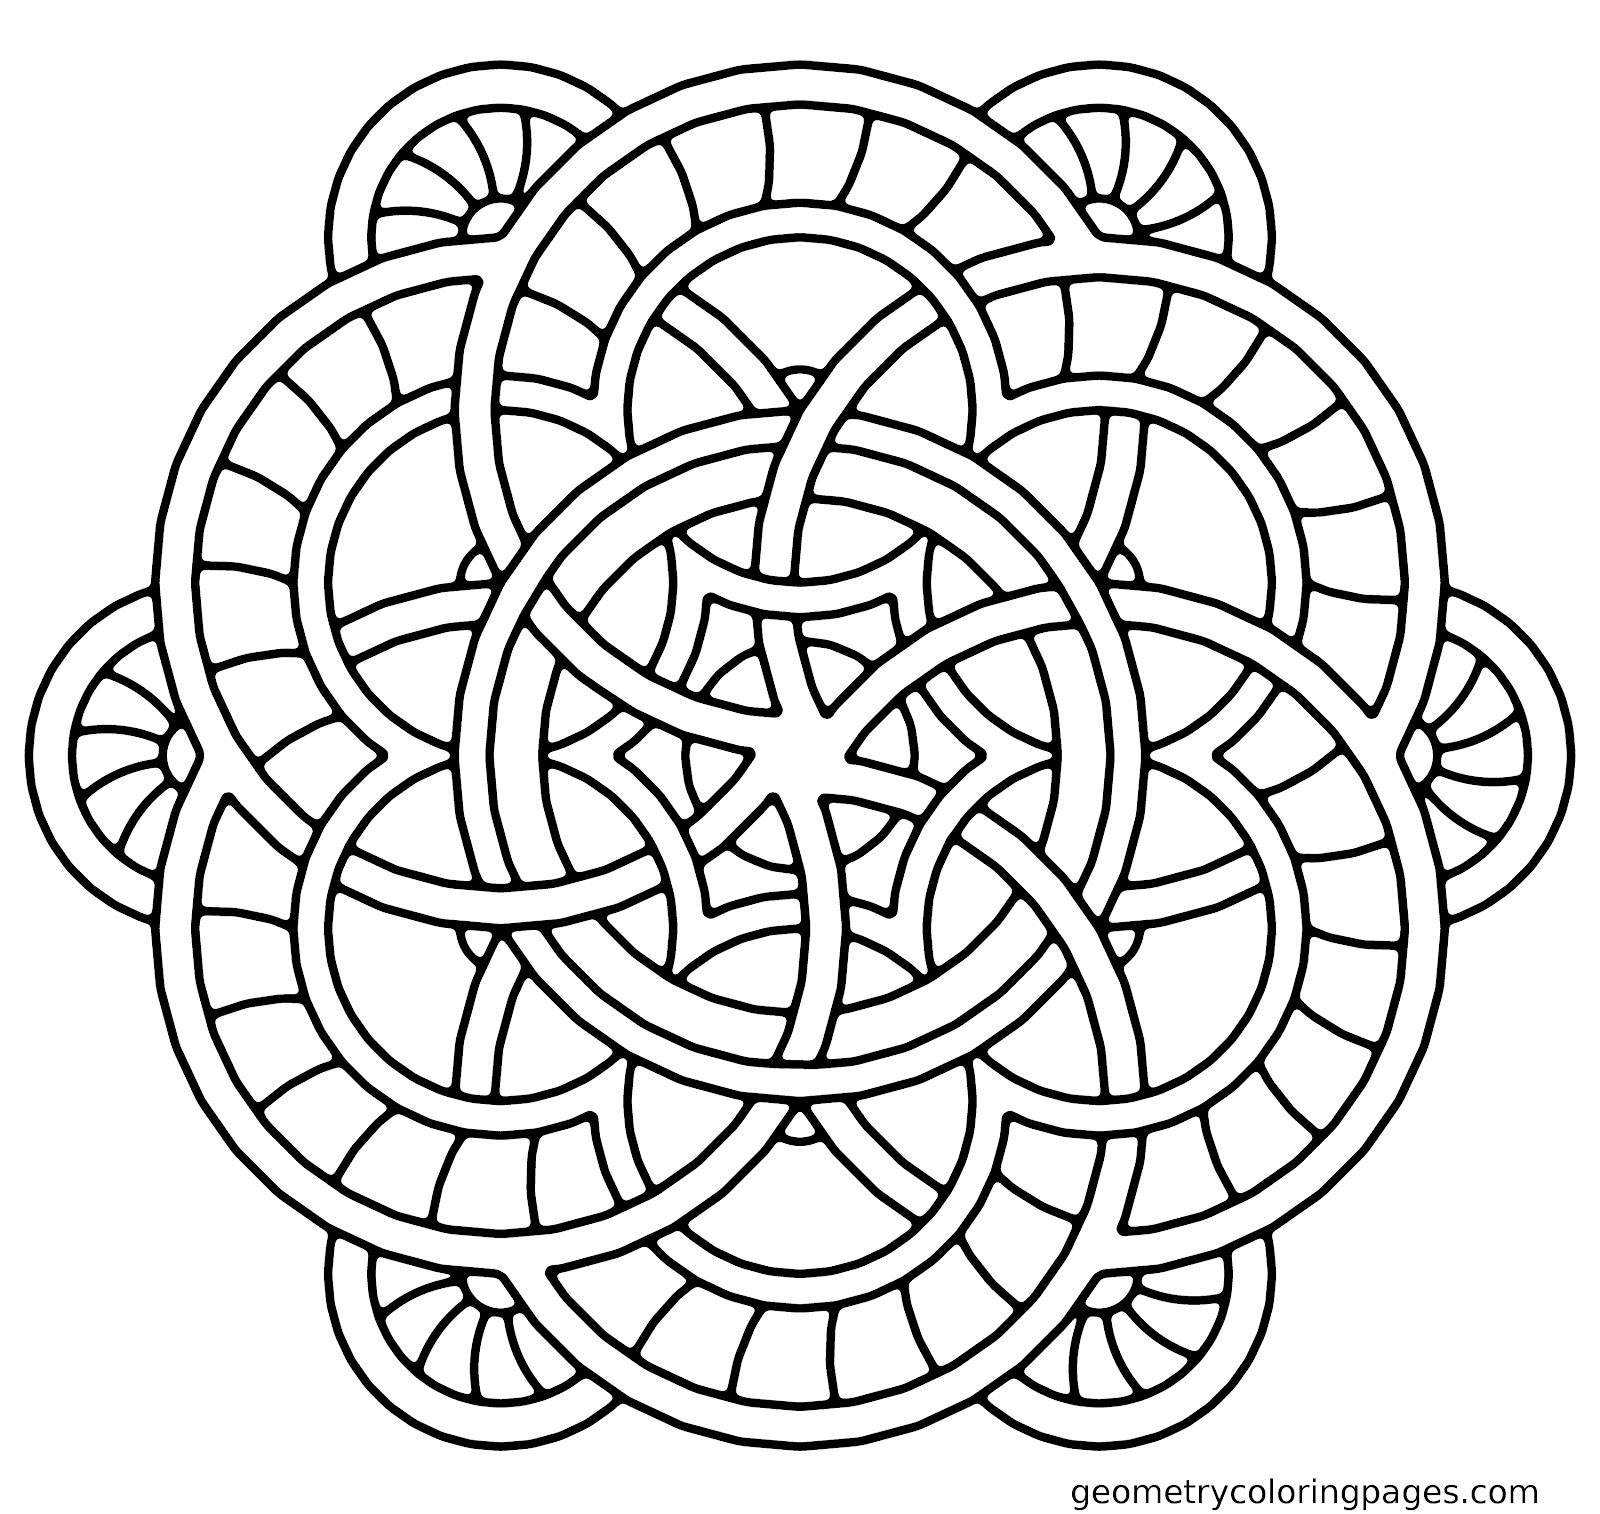 100 ideas Mandala Coloring History on spectaxmaswnload